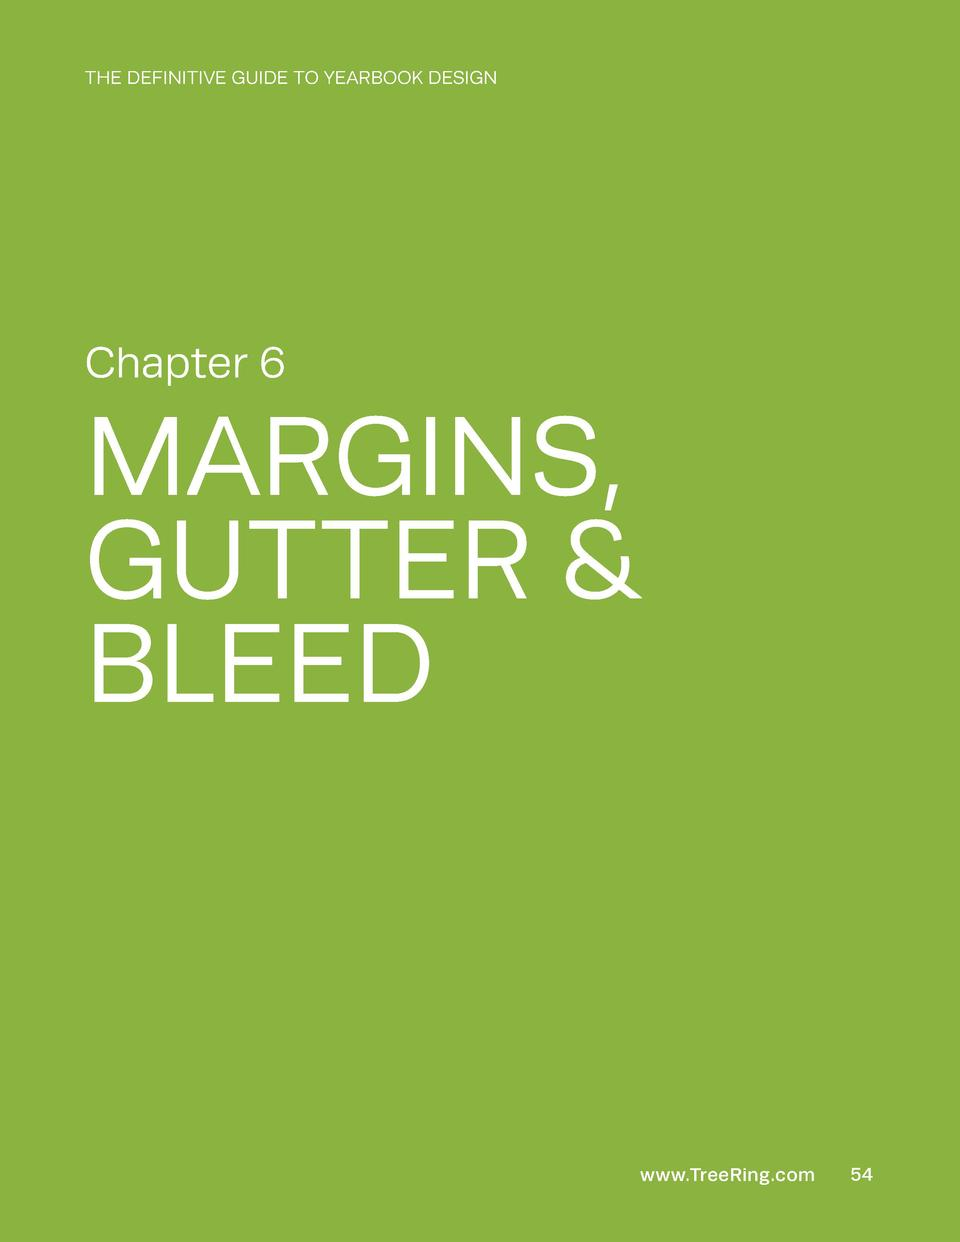 THE DEFINITIVE GUIDE TO YEARBOOK DESIGN  Chapter 6  MARGINS, GUTTER   BLEED  www.TreeRing.com  54